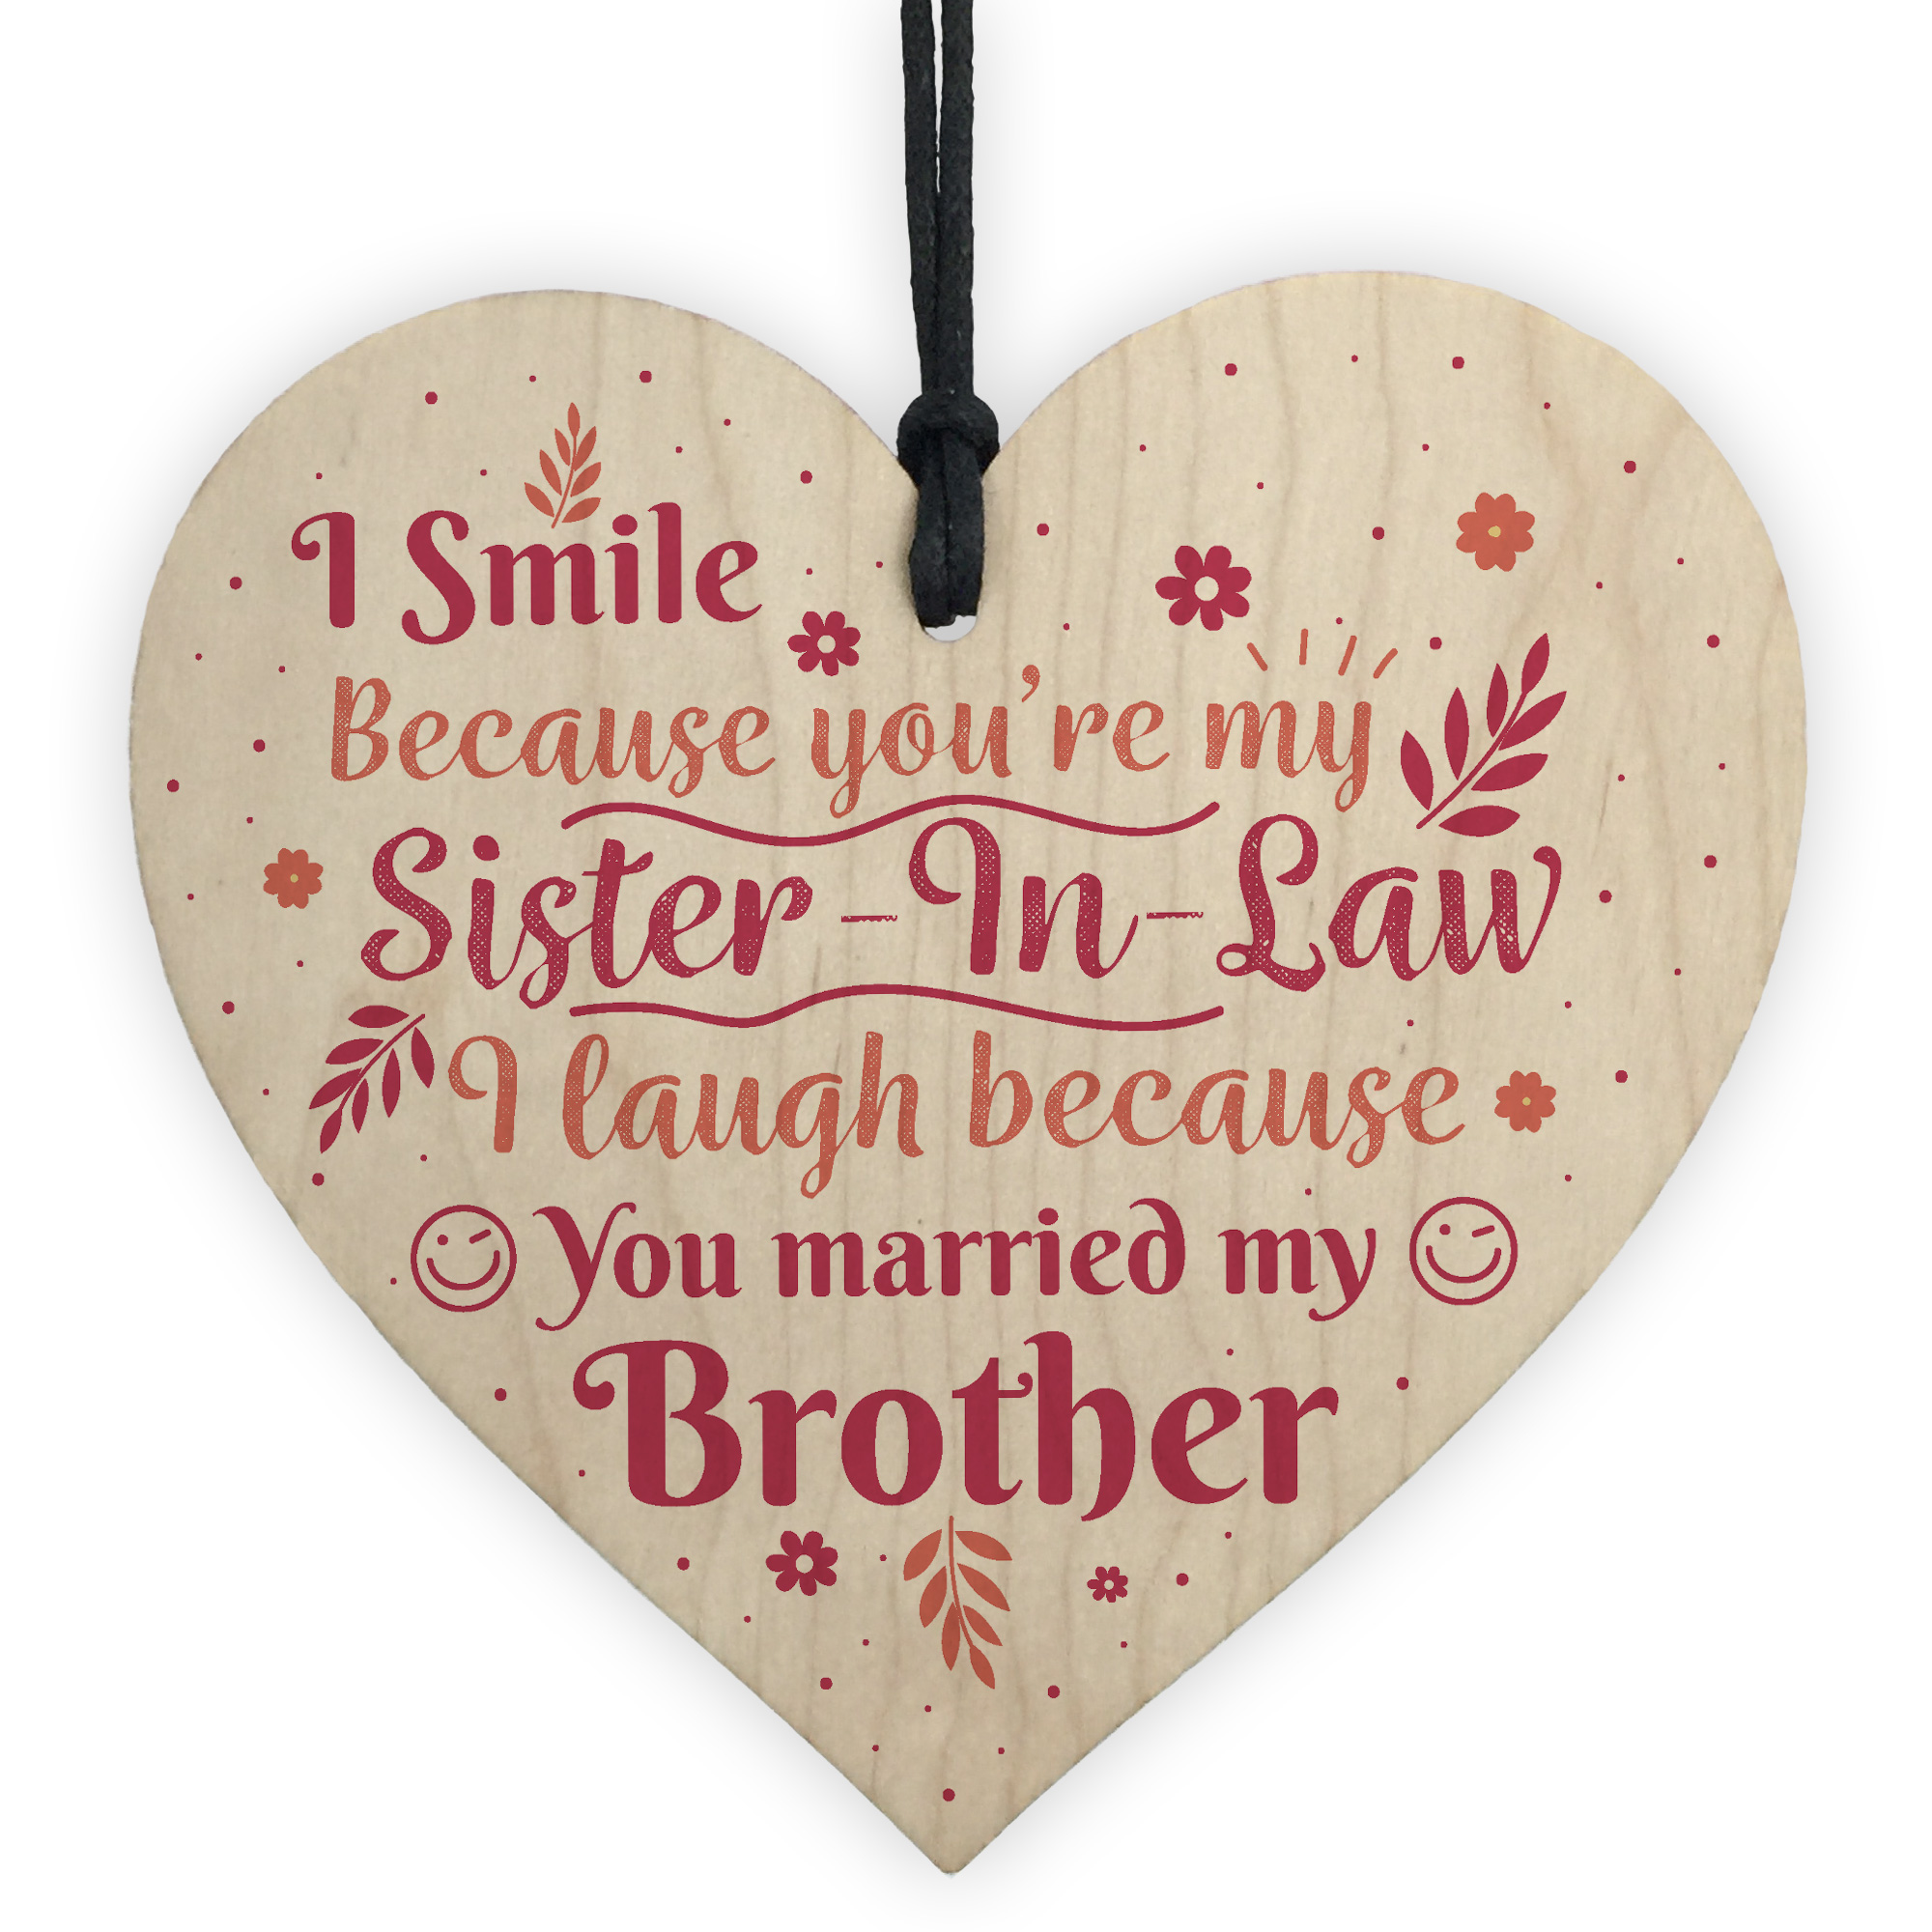 Details About Funny Sister In Law Birthday Card Heart Plaque Keepsake Friendship Gifts